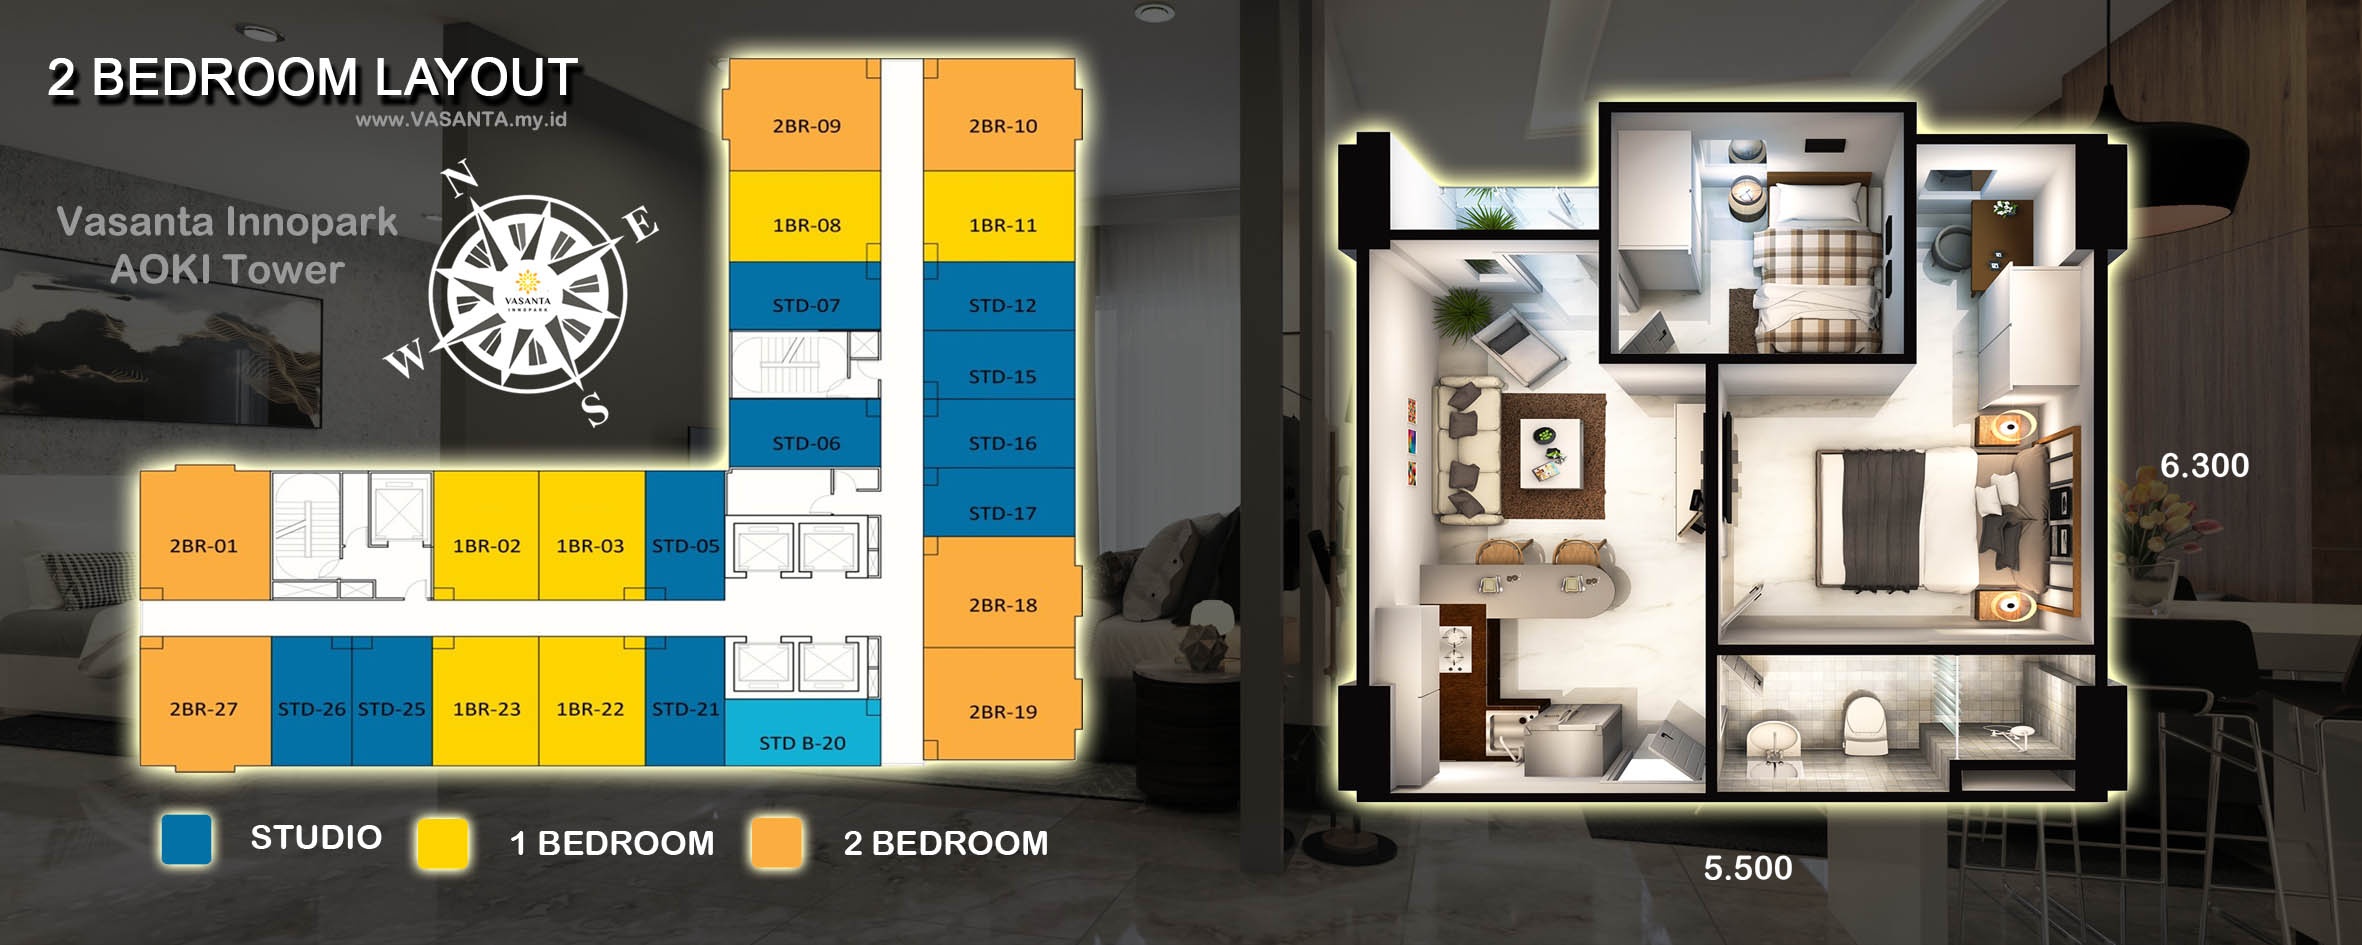 vasanta-innopark-tower-AOKI-type-2br-lay-out